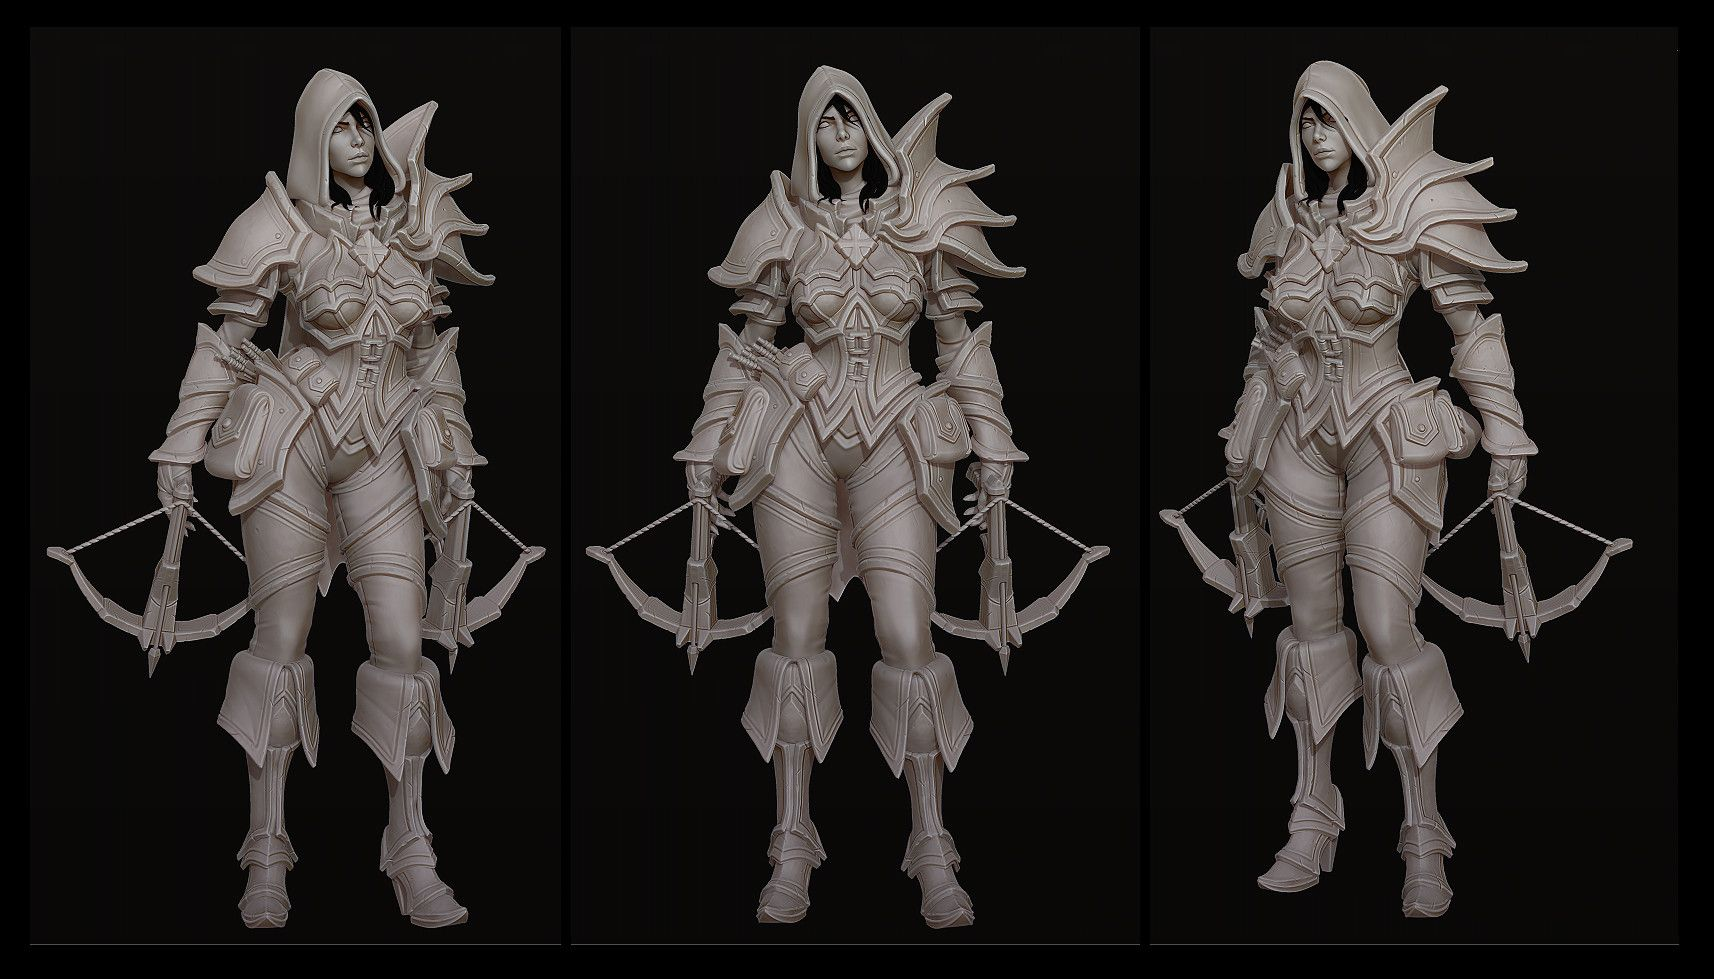 Https Www Artstation Com Artwork 1qvrk Demon Hunter Character Design Artwork Within these pages, you will find everything required to understand how best to play this hero, in both different map styles and. demon hunter